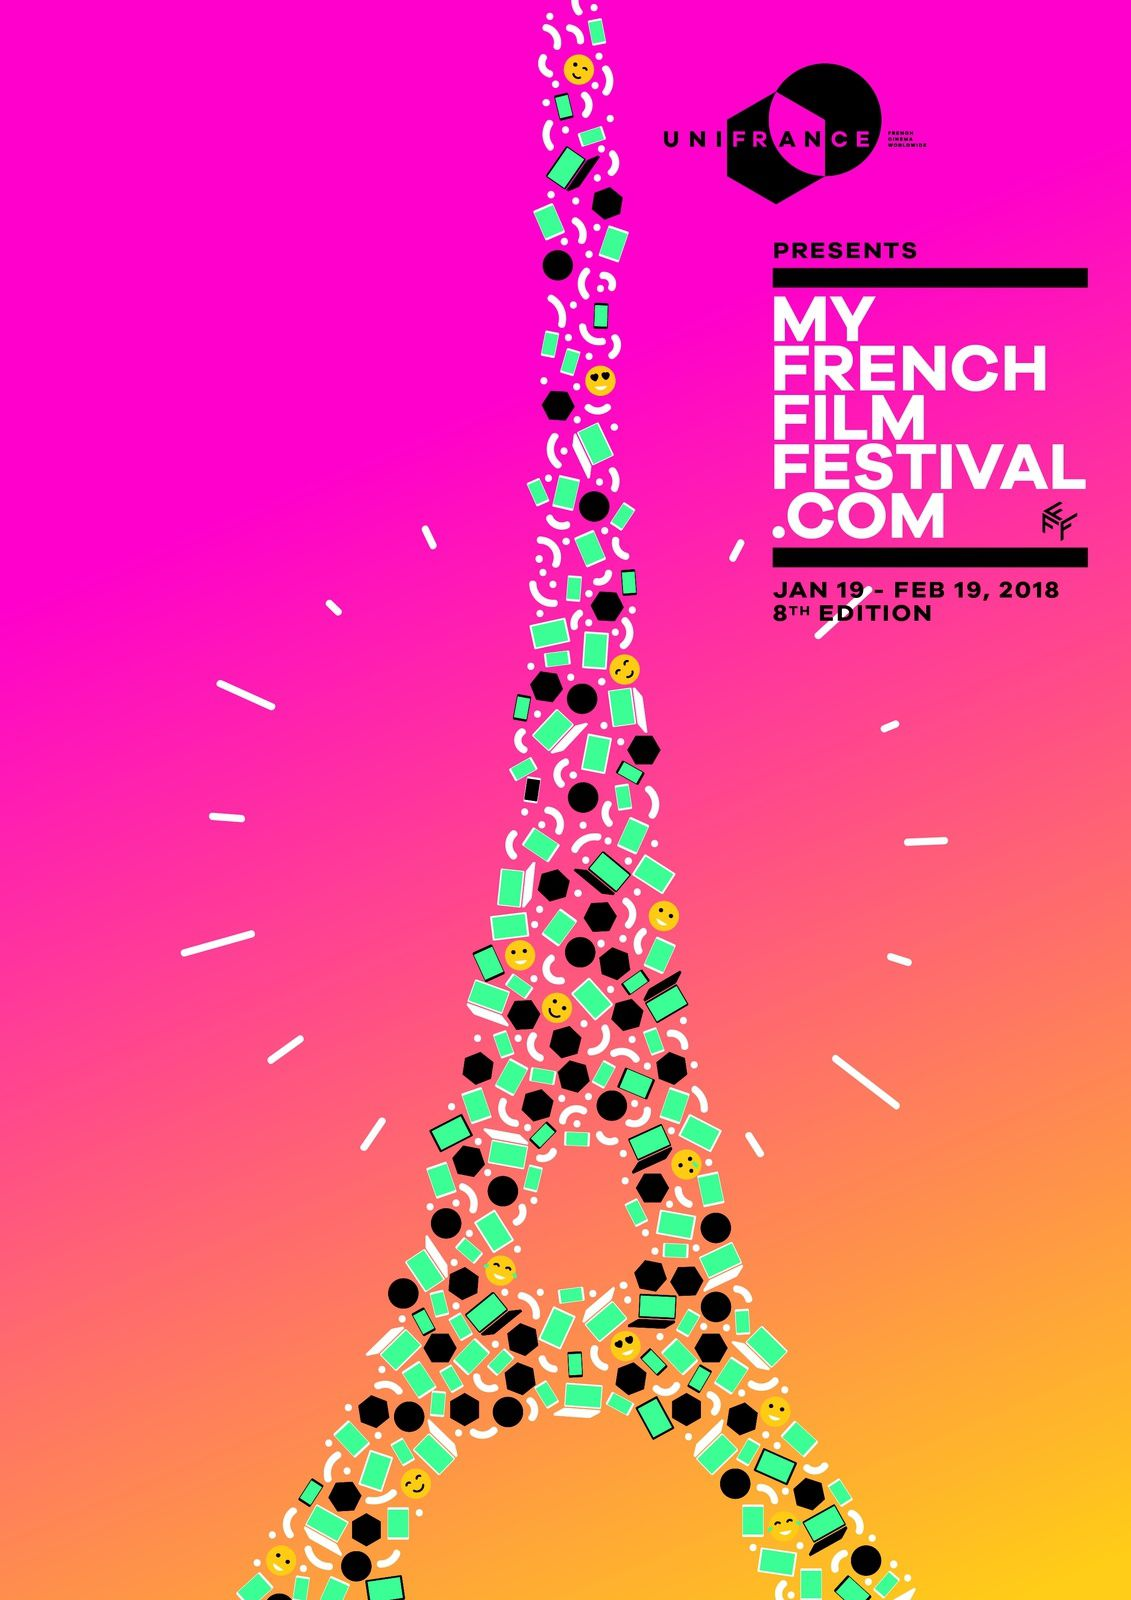 MyFrenchFilmFestival, 8e édition